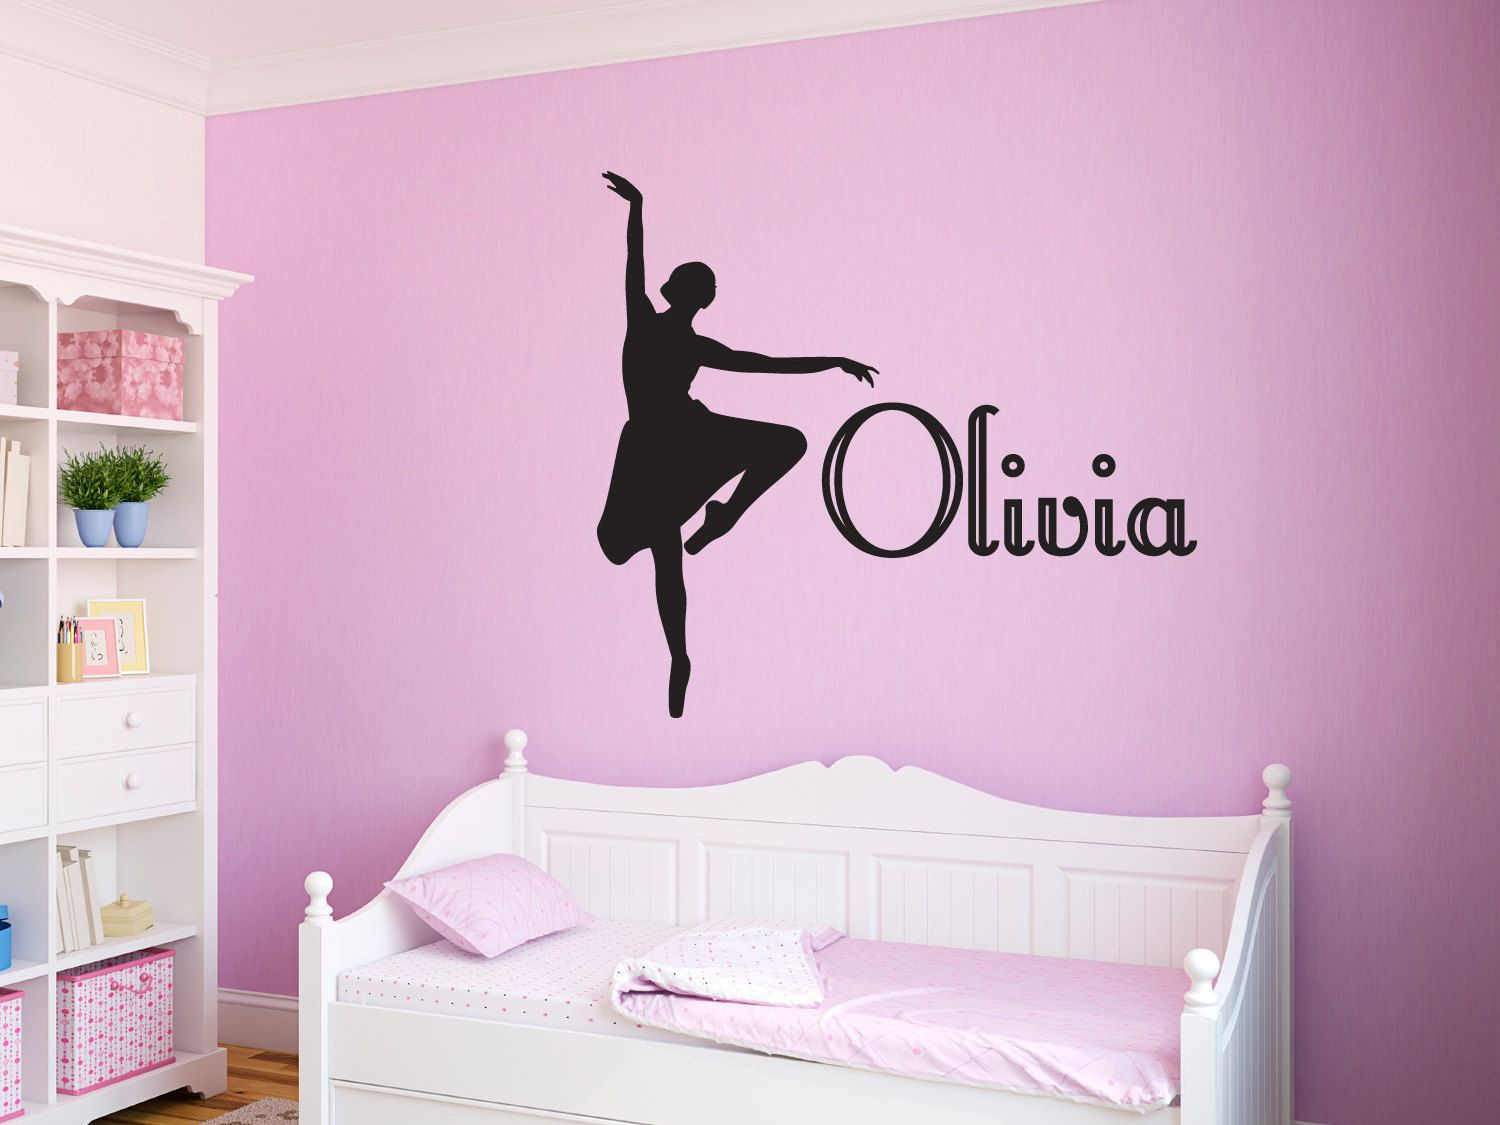 Ballerina Vinyl Wall Decal Personalized Girls Name Ballet Decal - Custom vinyl wall decals dance